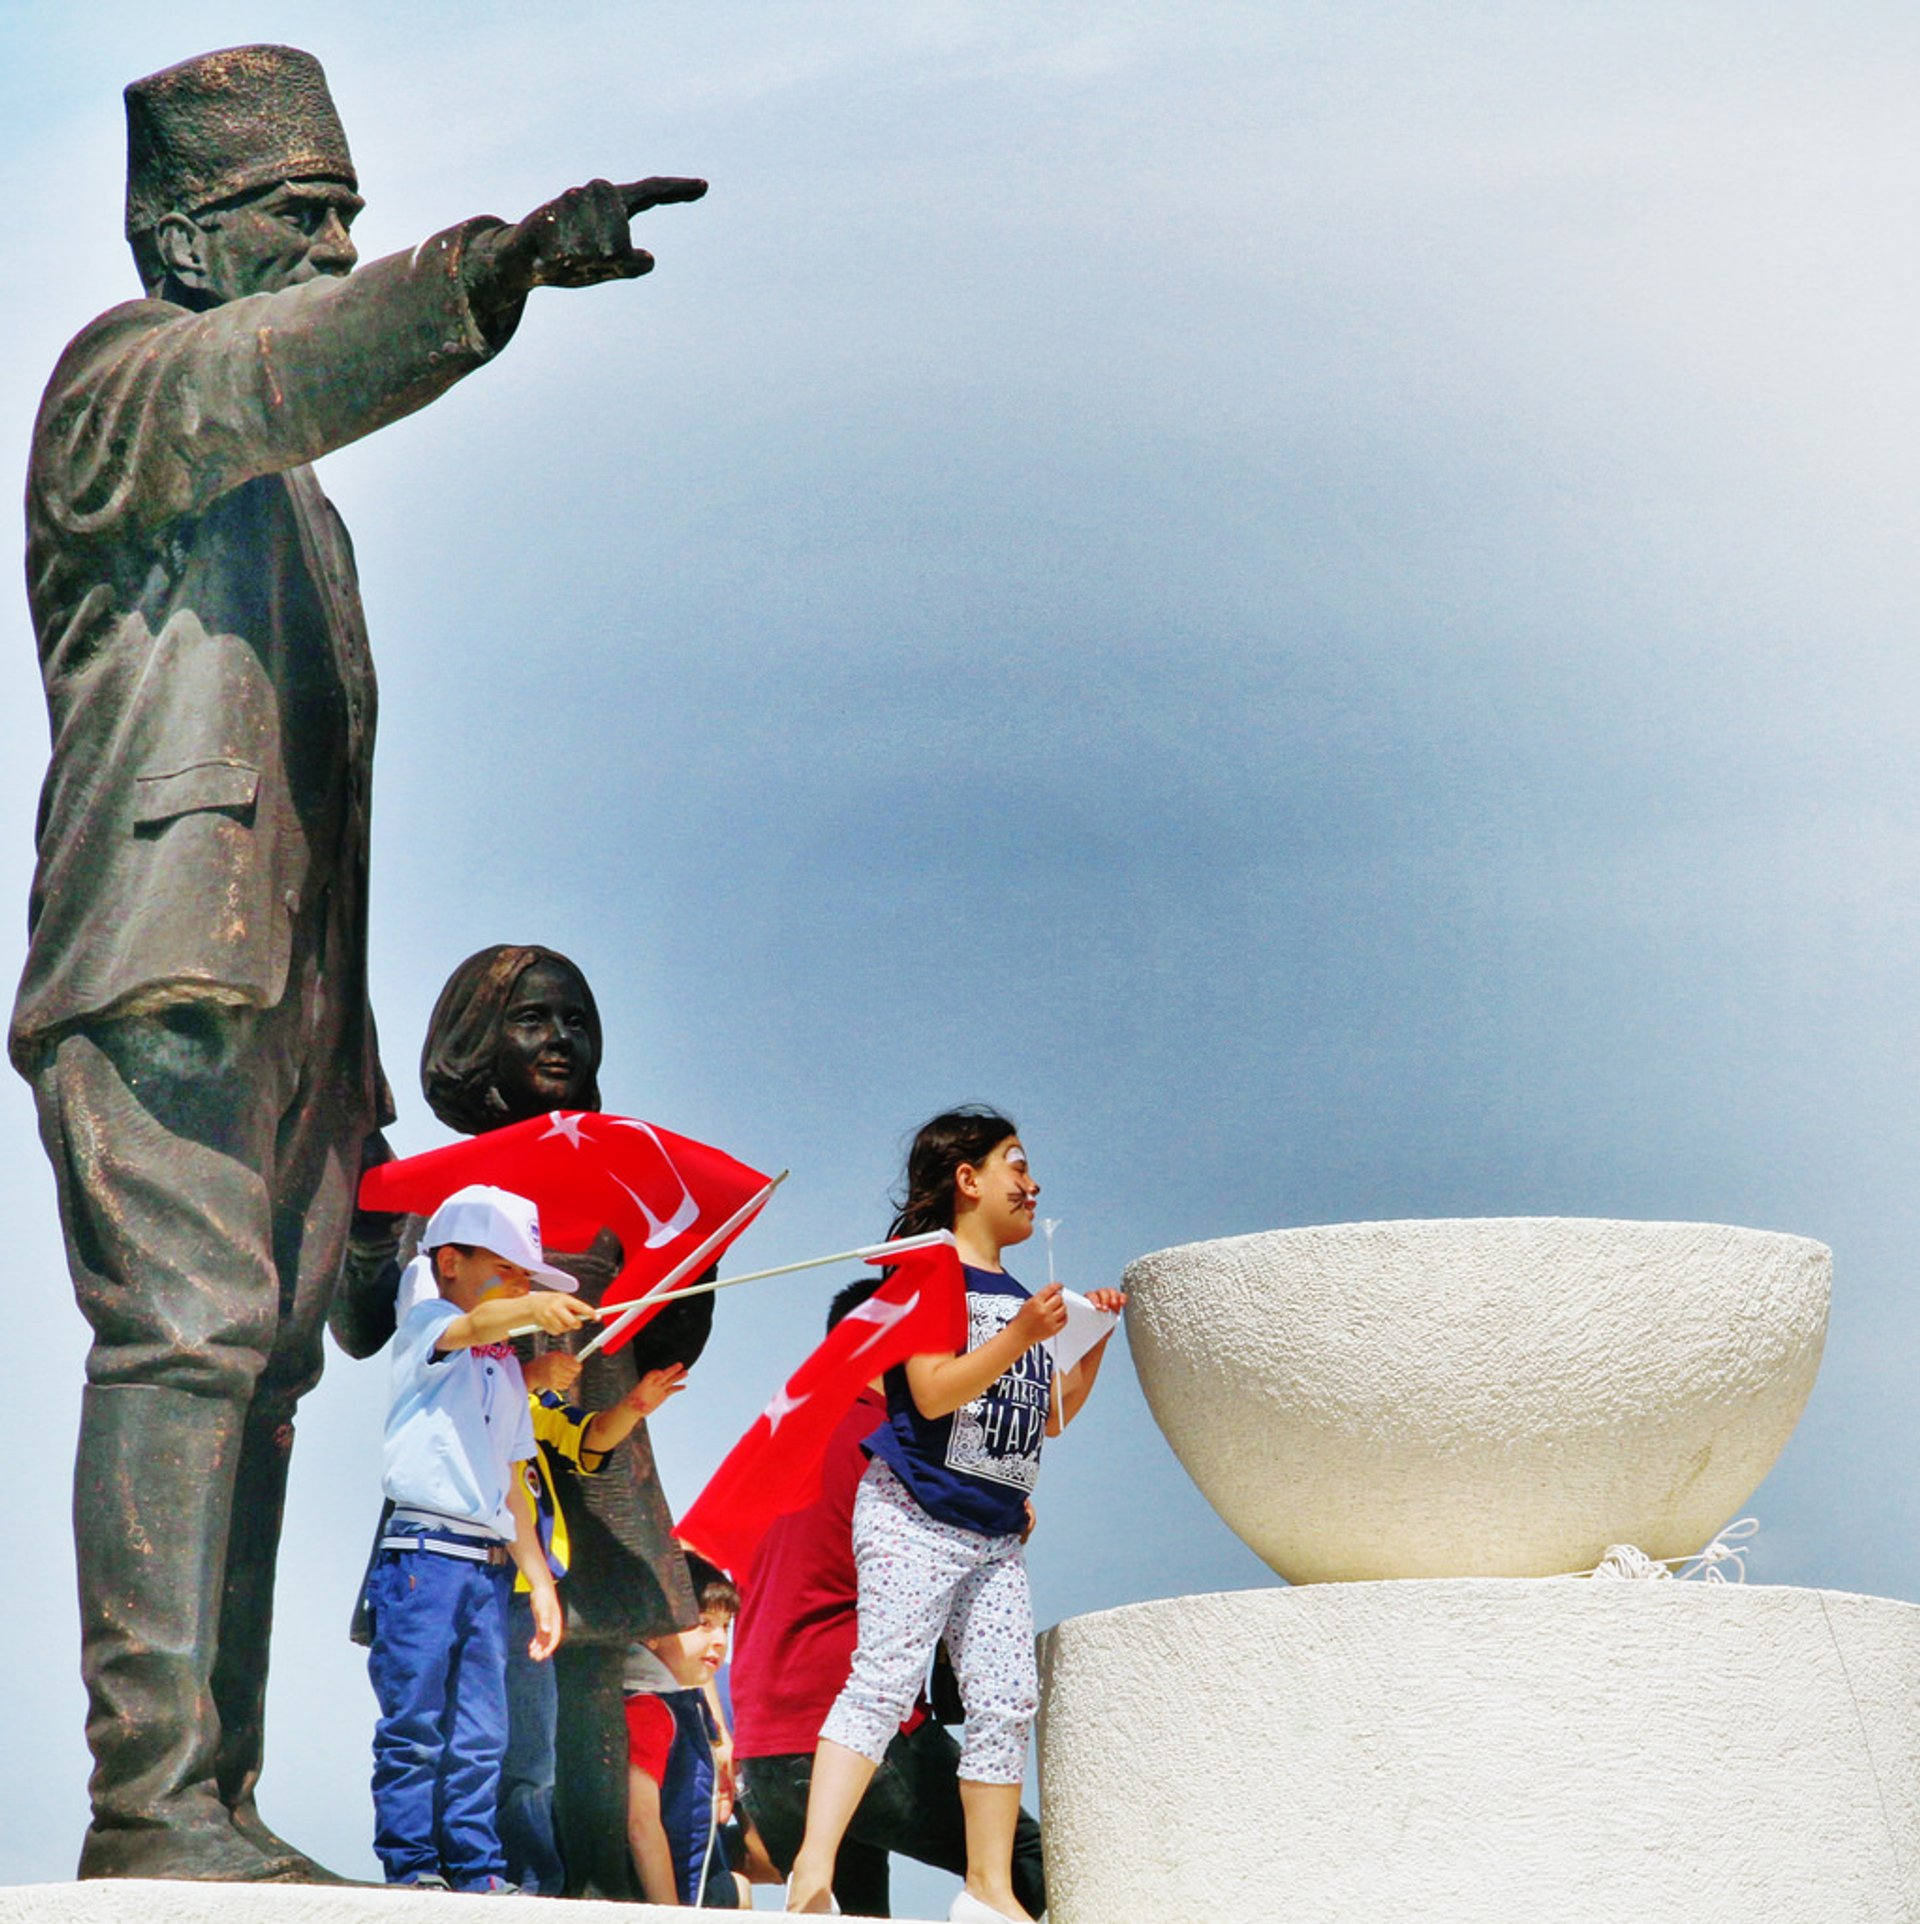 National Sovereignty and Children's Day in Istanbul - Best Season 2020